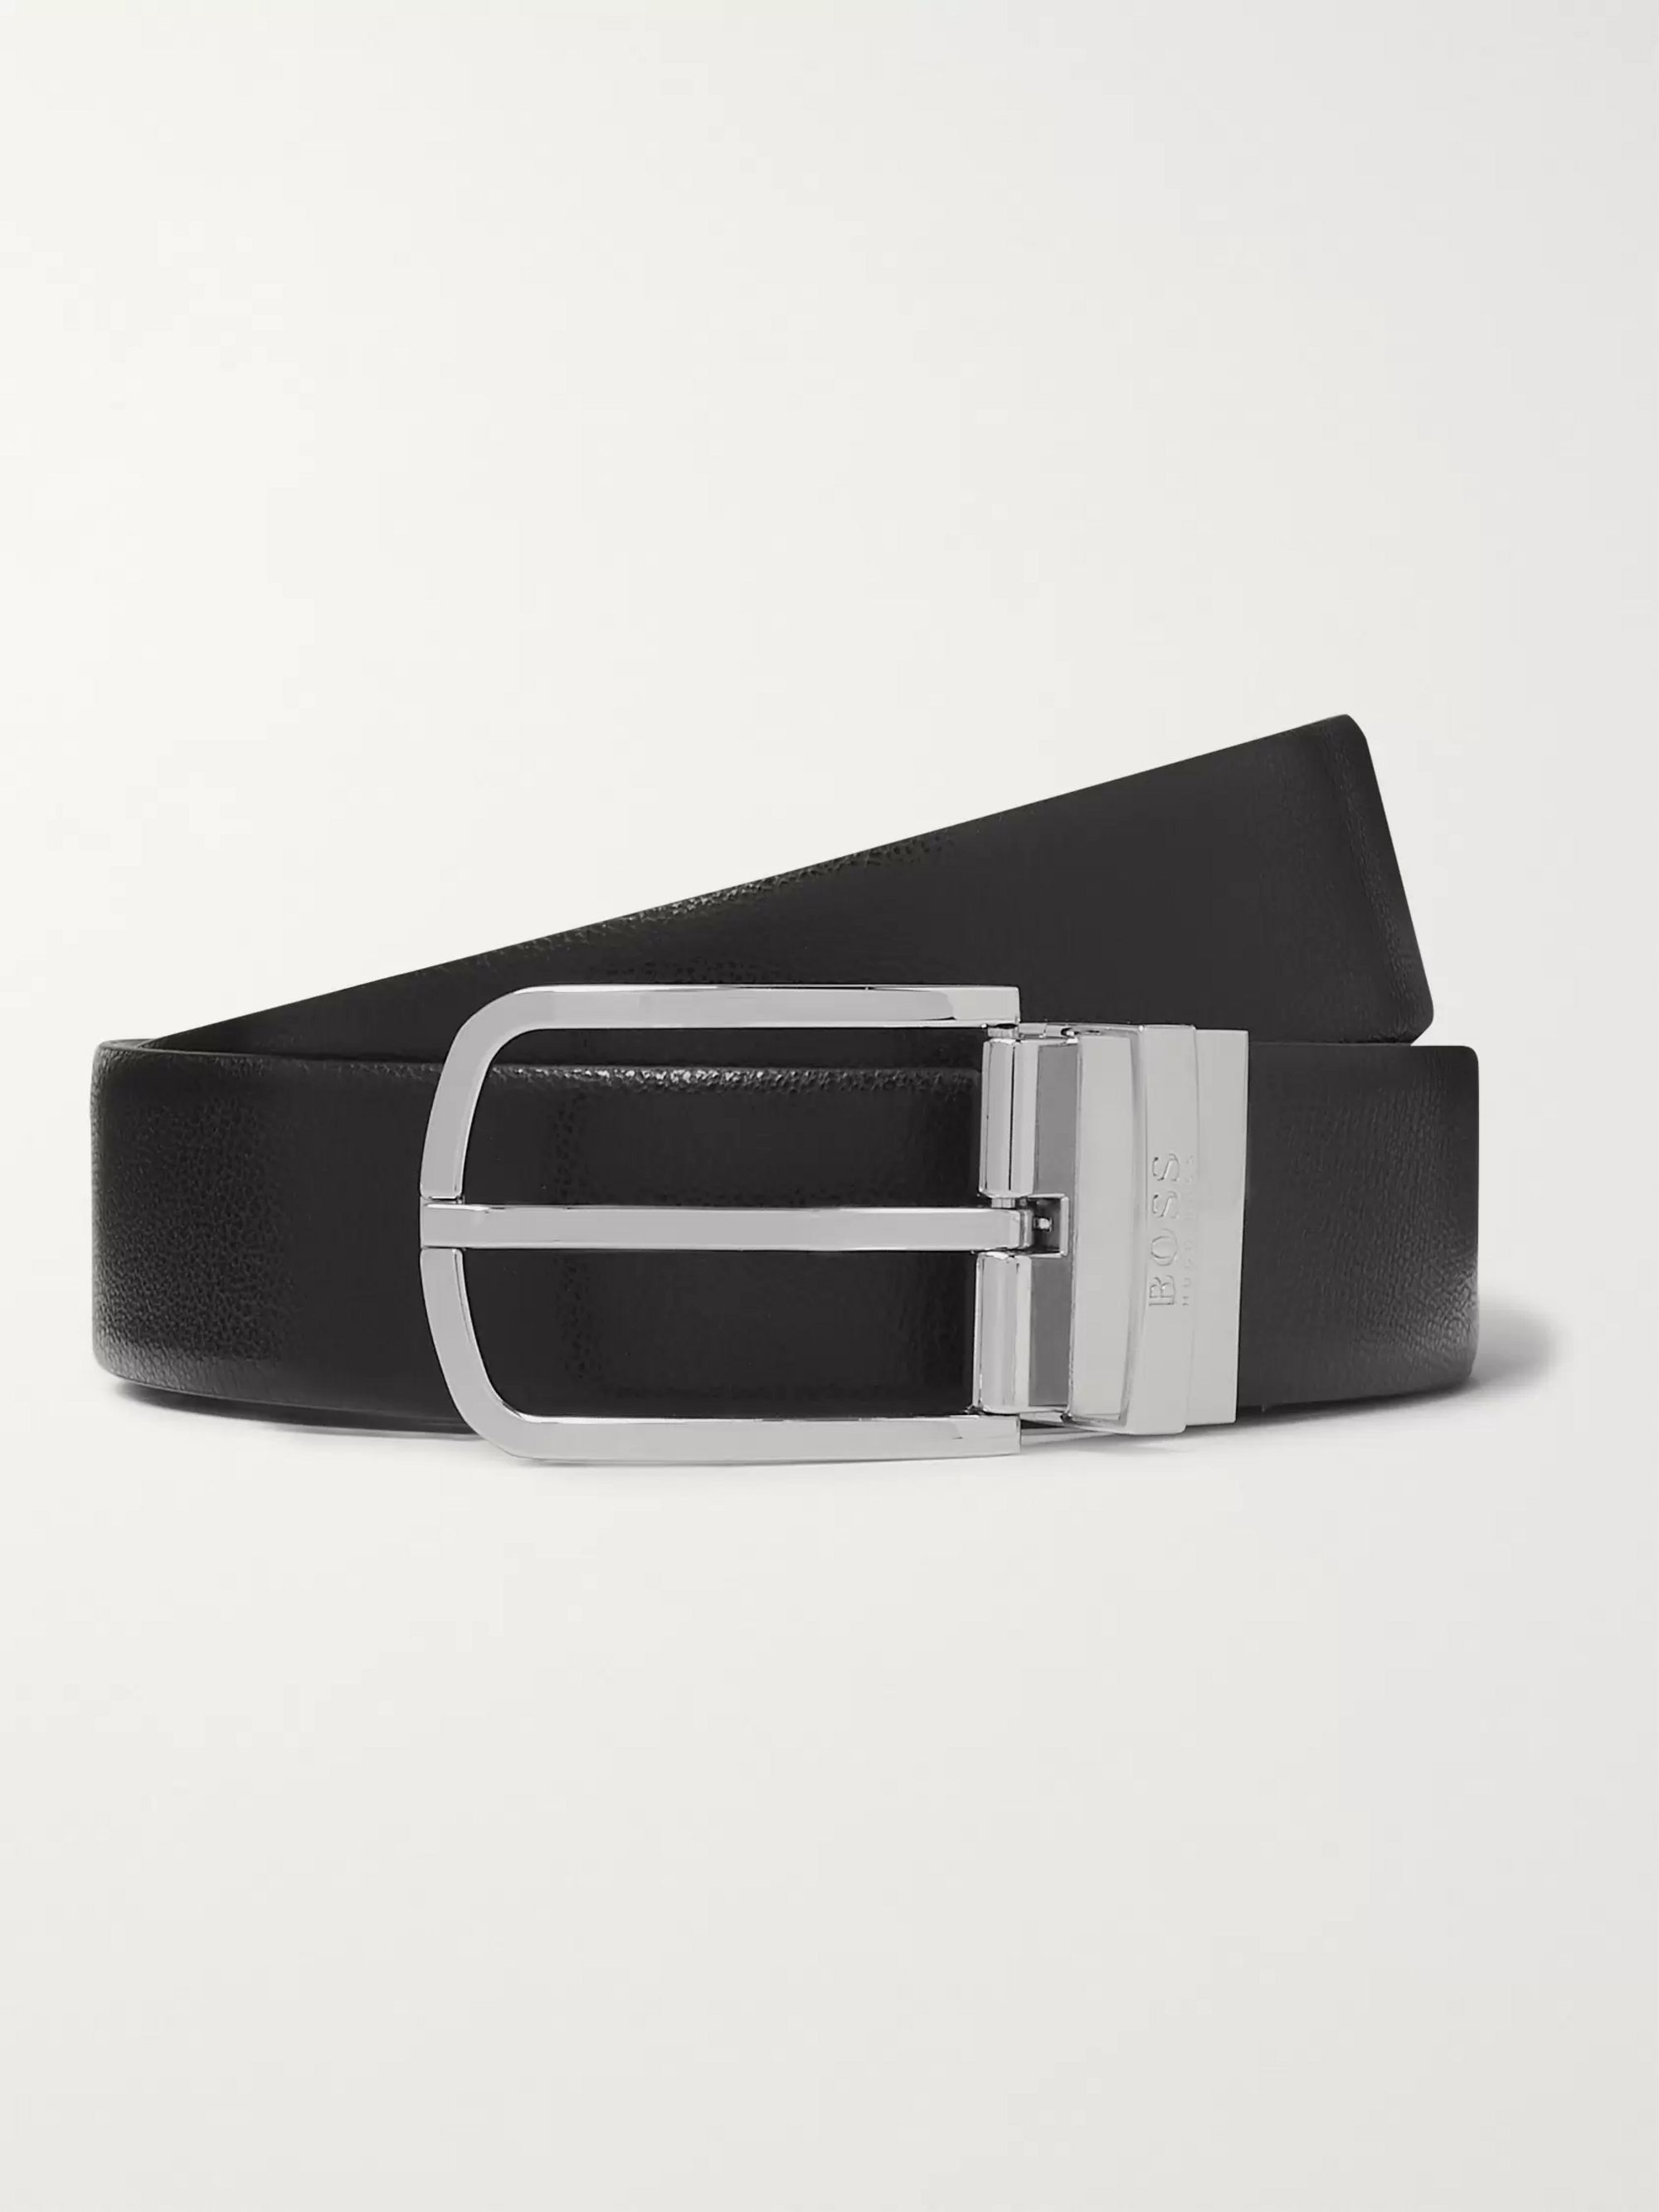 Hugo Boss 3.5cm Black and Brown Reversible Leather Belt